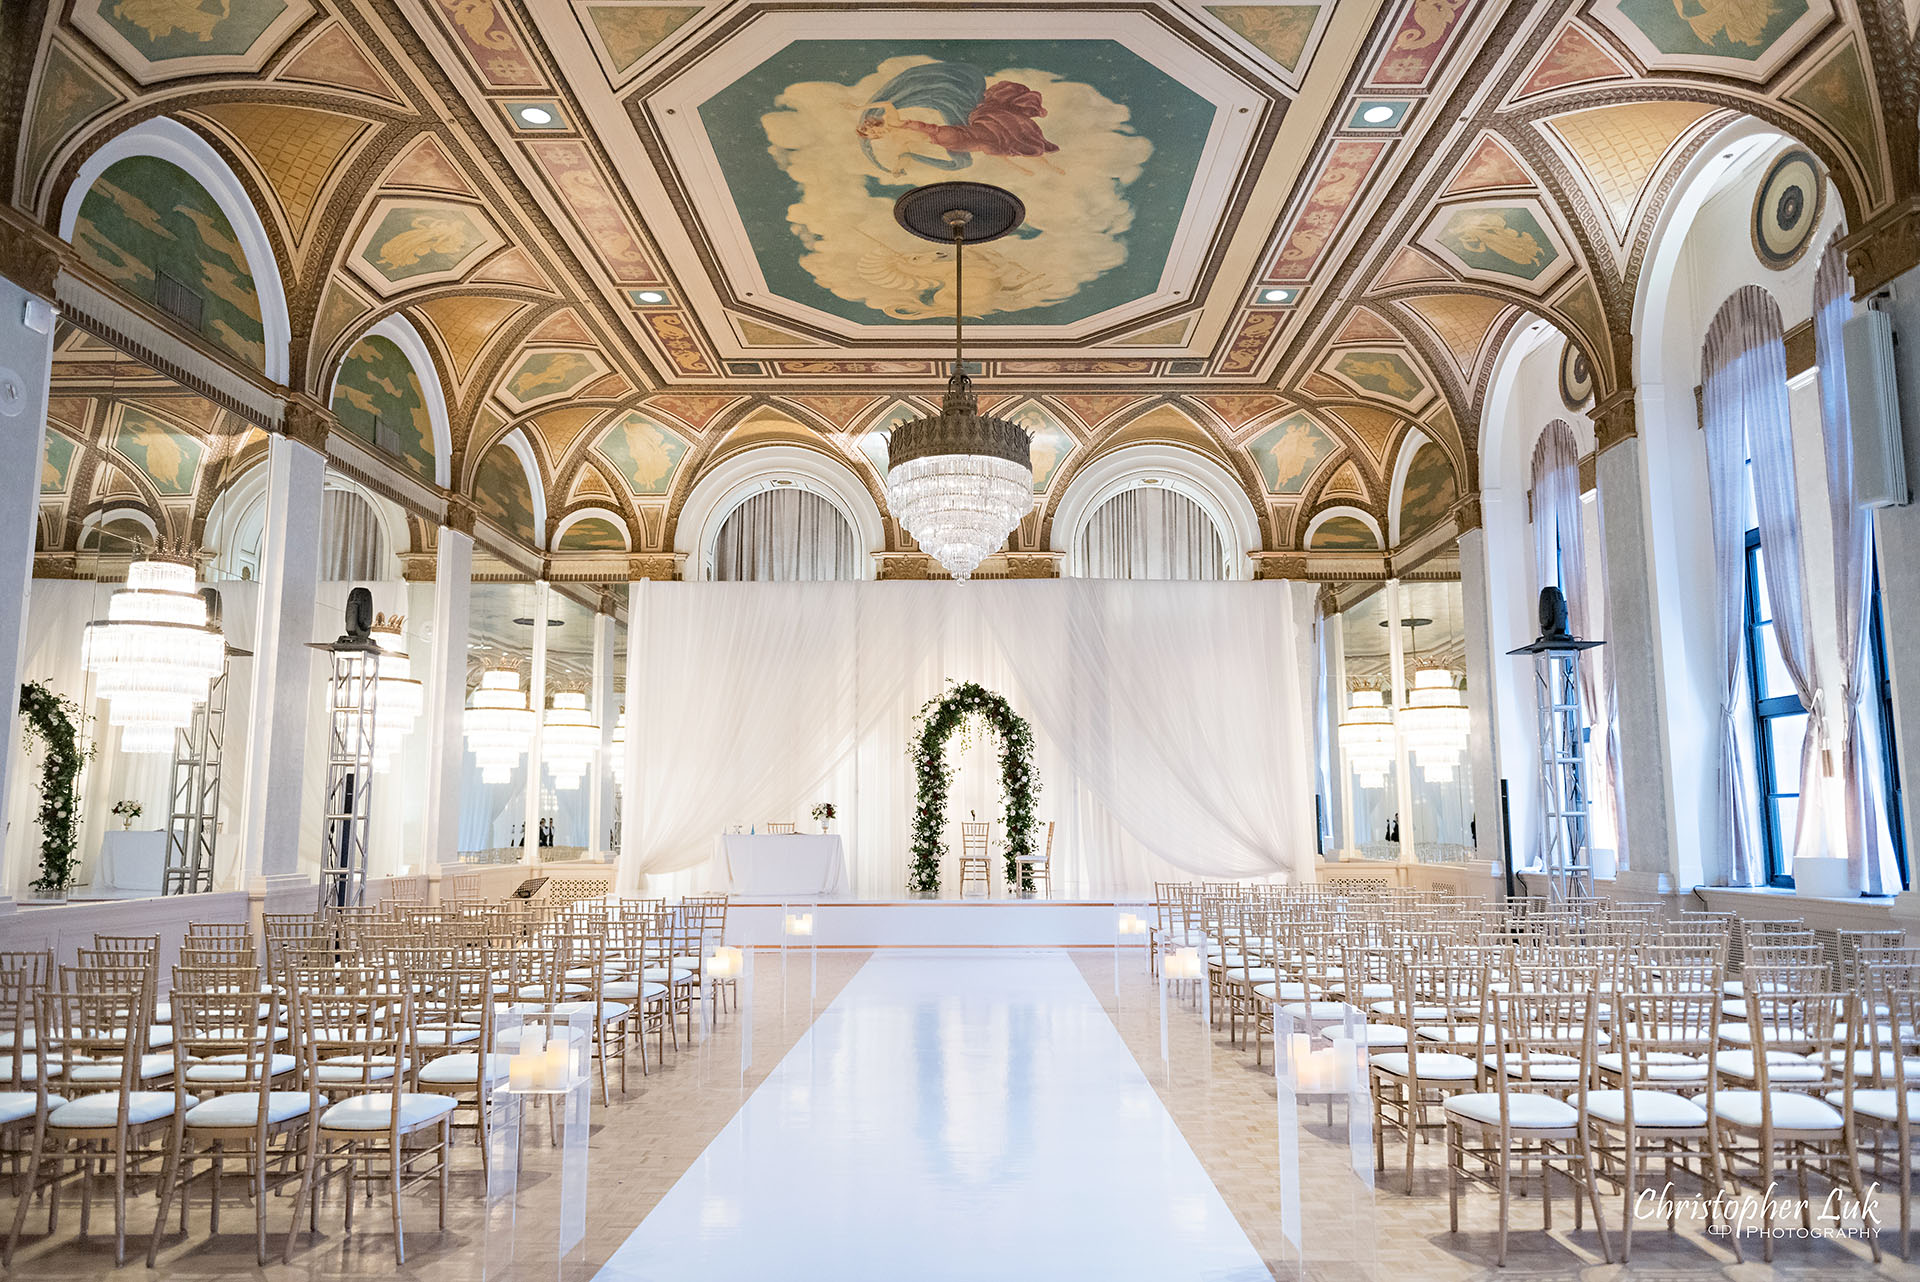 Toronto Fairmont Royal York Hotel Wedding Christopher Luk Photographer Photography Crystal Chandelier Ballroom Ceremony Setup Vinyl Floor Floral Arch Aisle Dance Floor Decor Chiavari Chairs